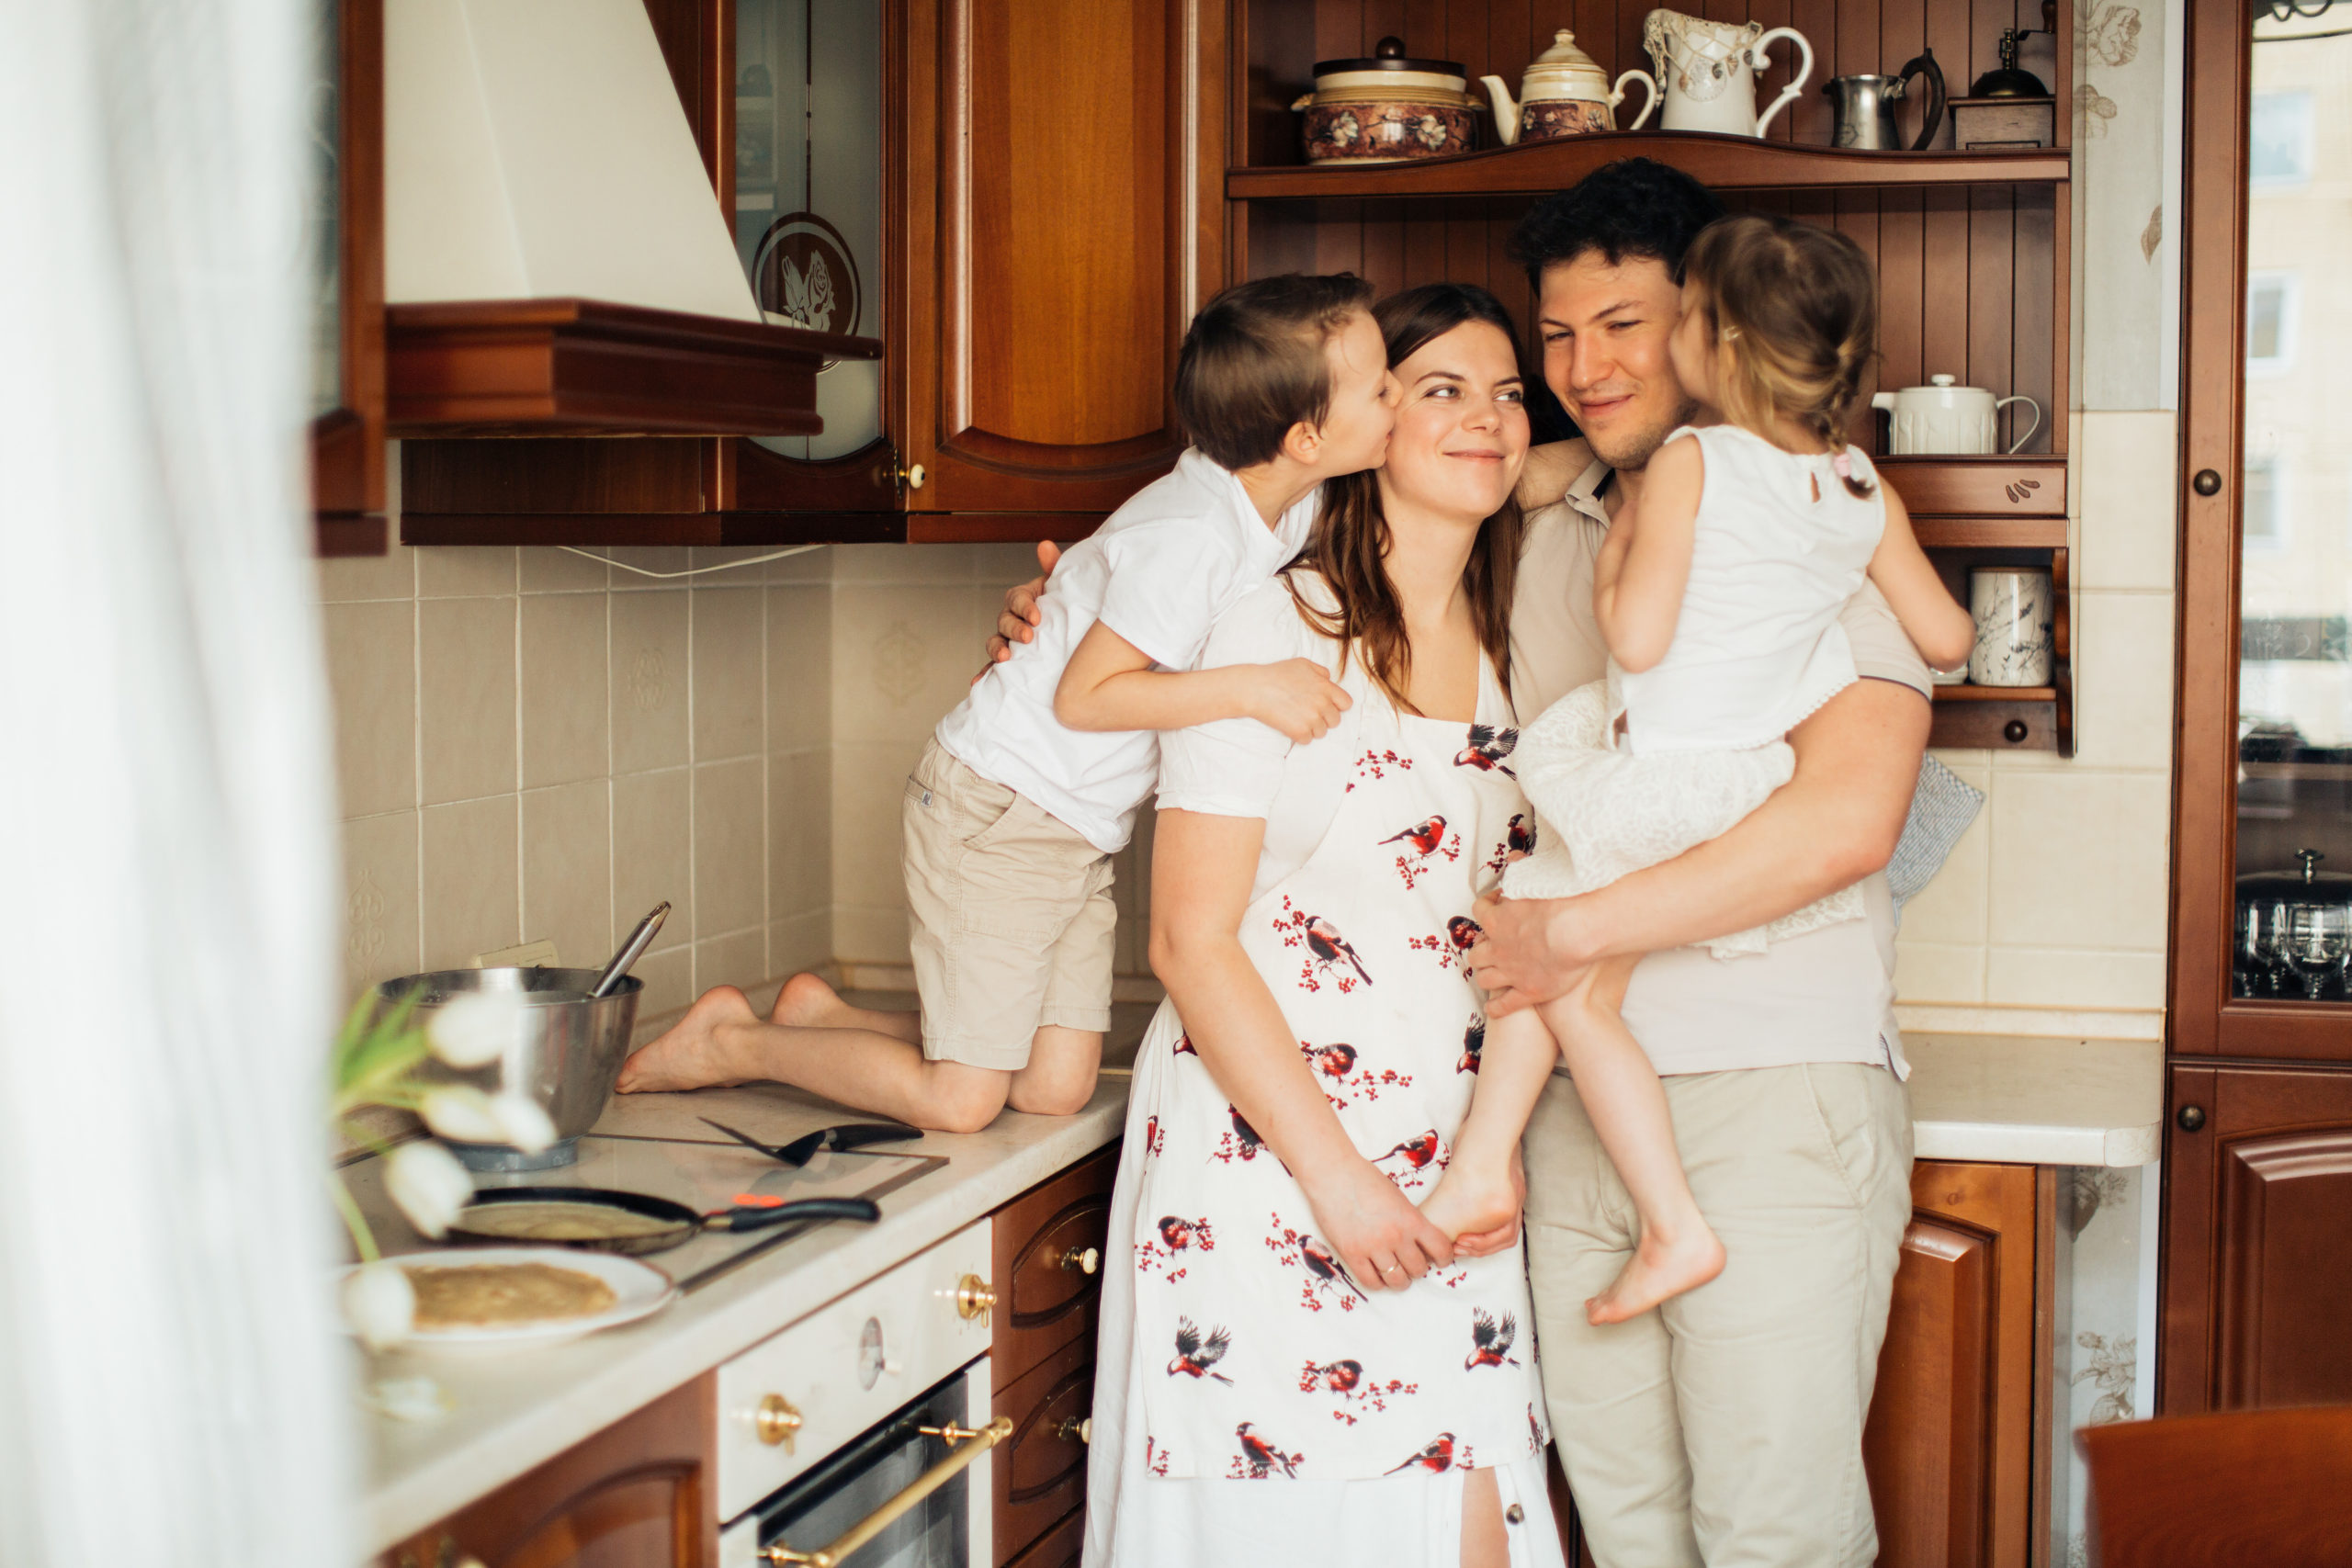 Helping Your Kids During Coronavirus Social Distancing Photo of kids kissing their parents